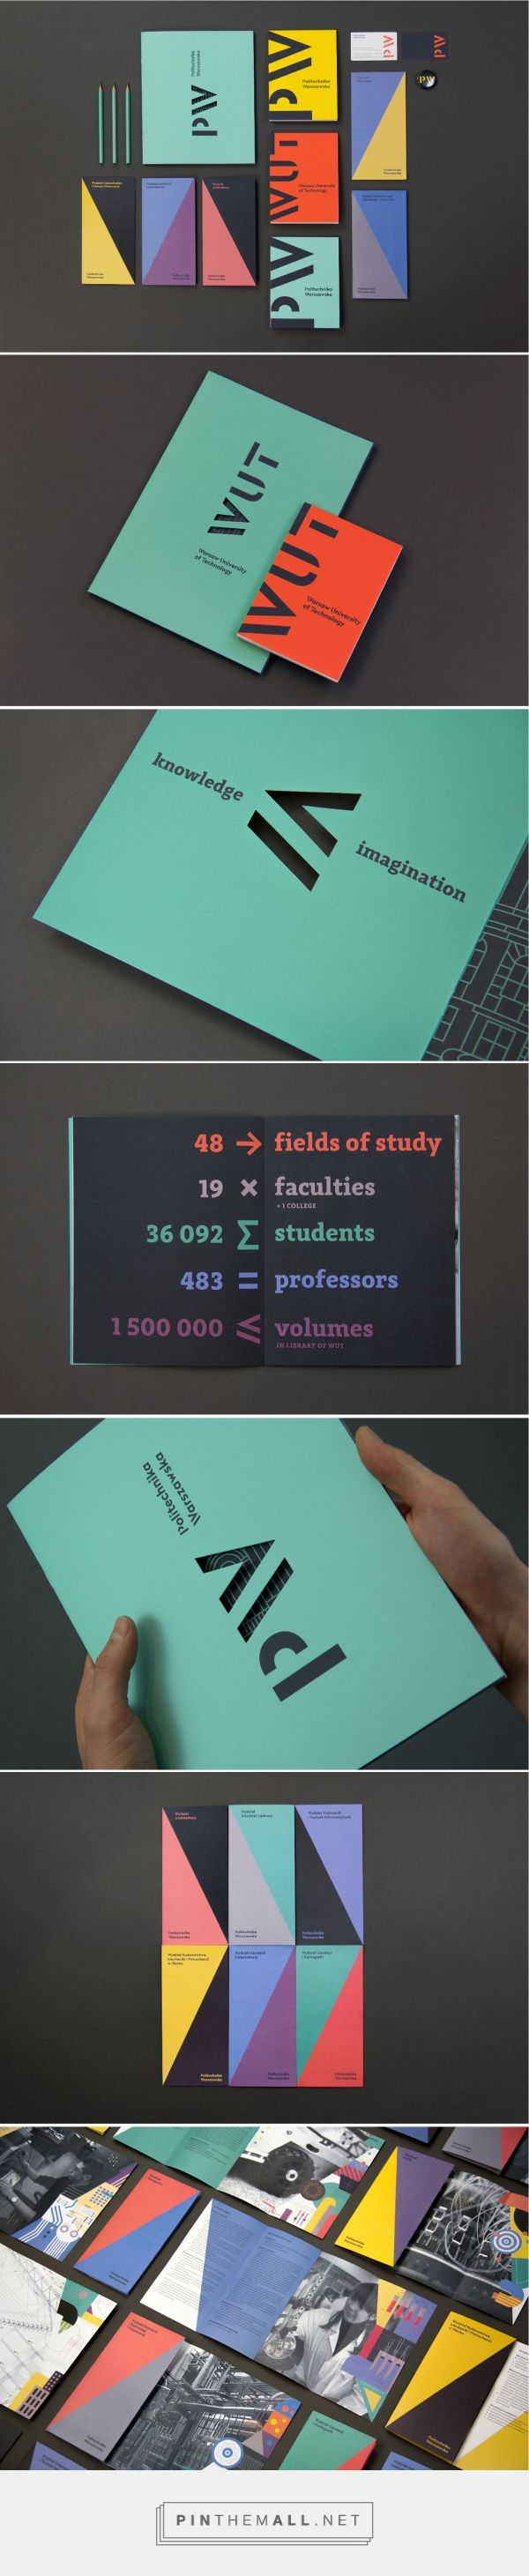 The Warsaw University of Technology Branding by Podpunkt   Fivestar Branding Agency – Design and Branding Agency & Curated Inspiration Gallery